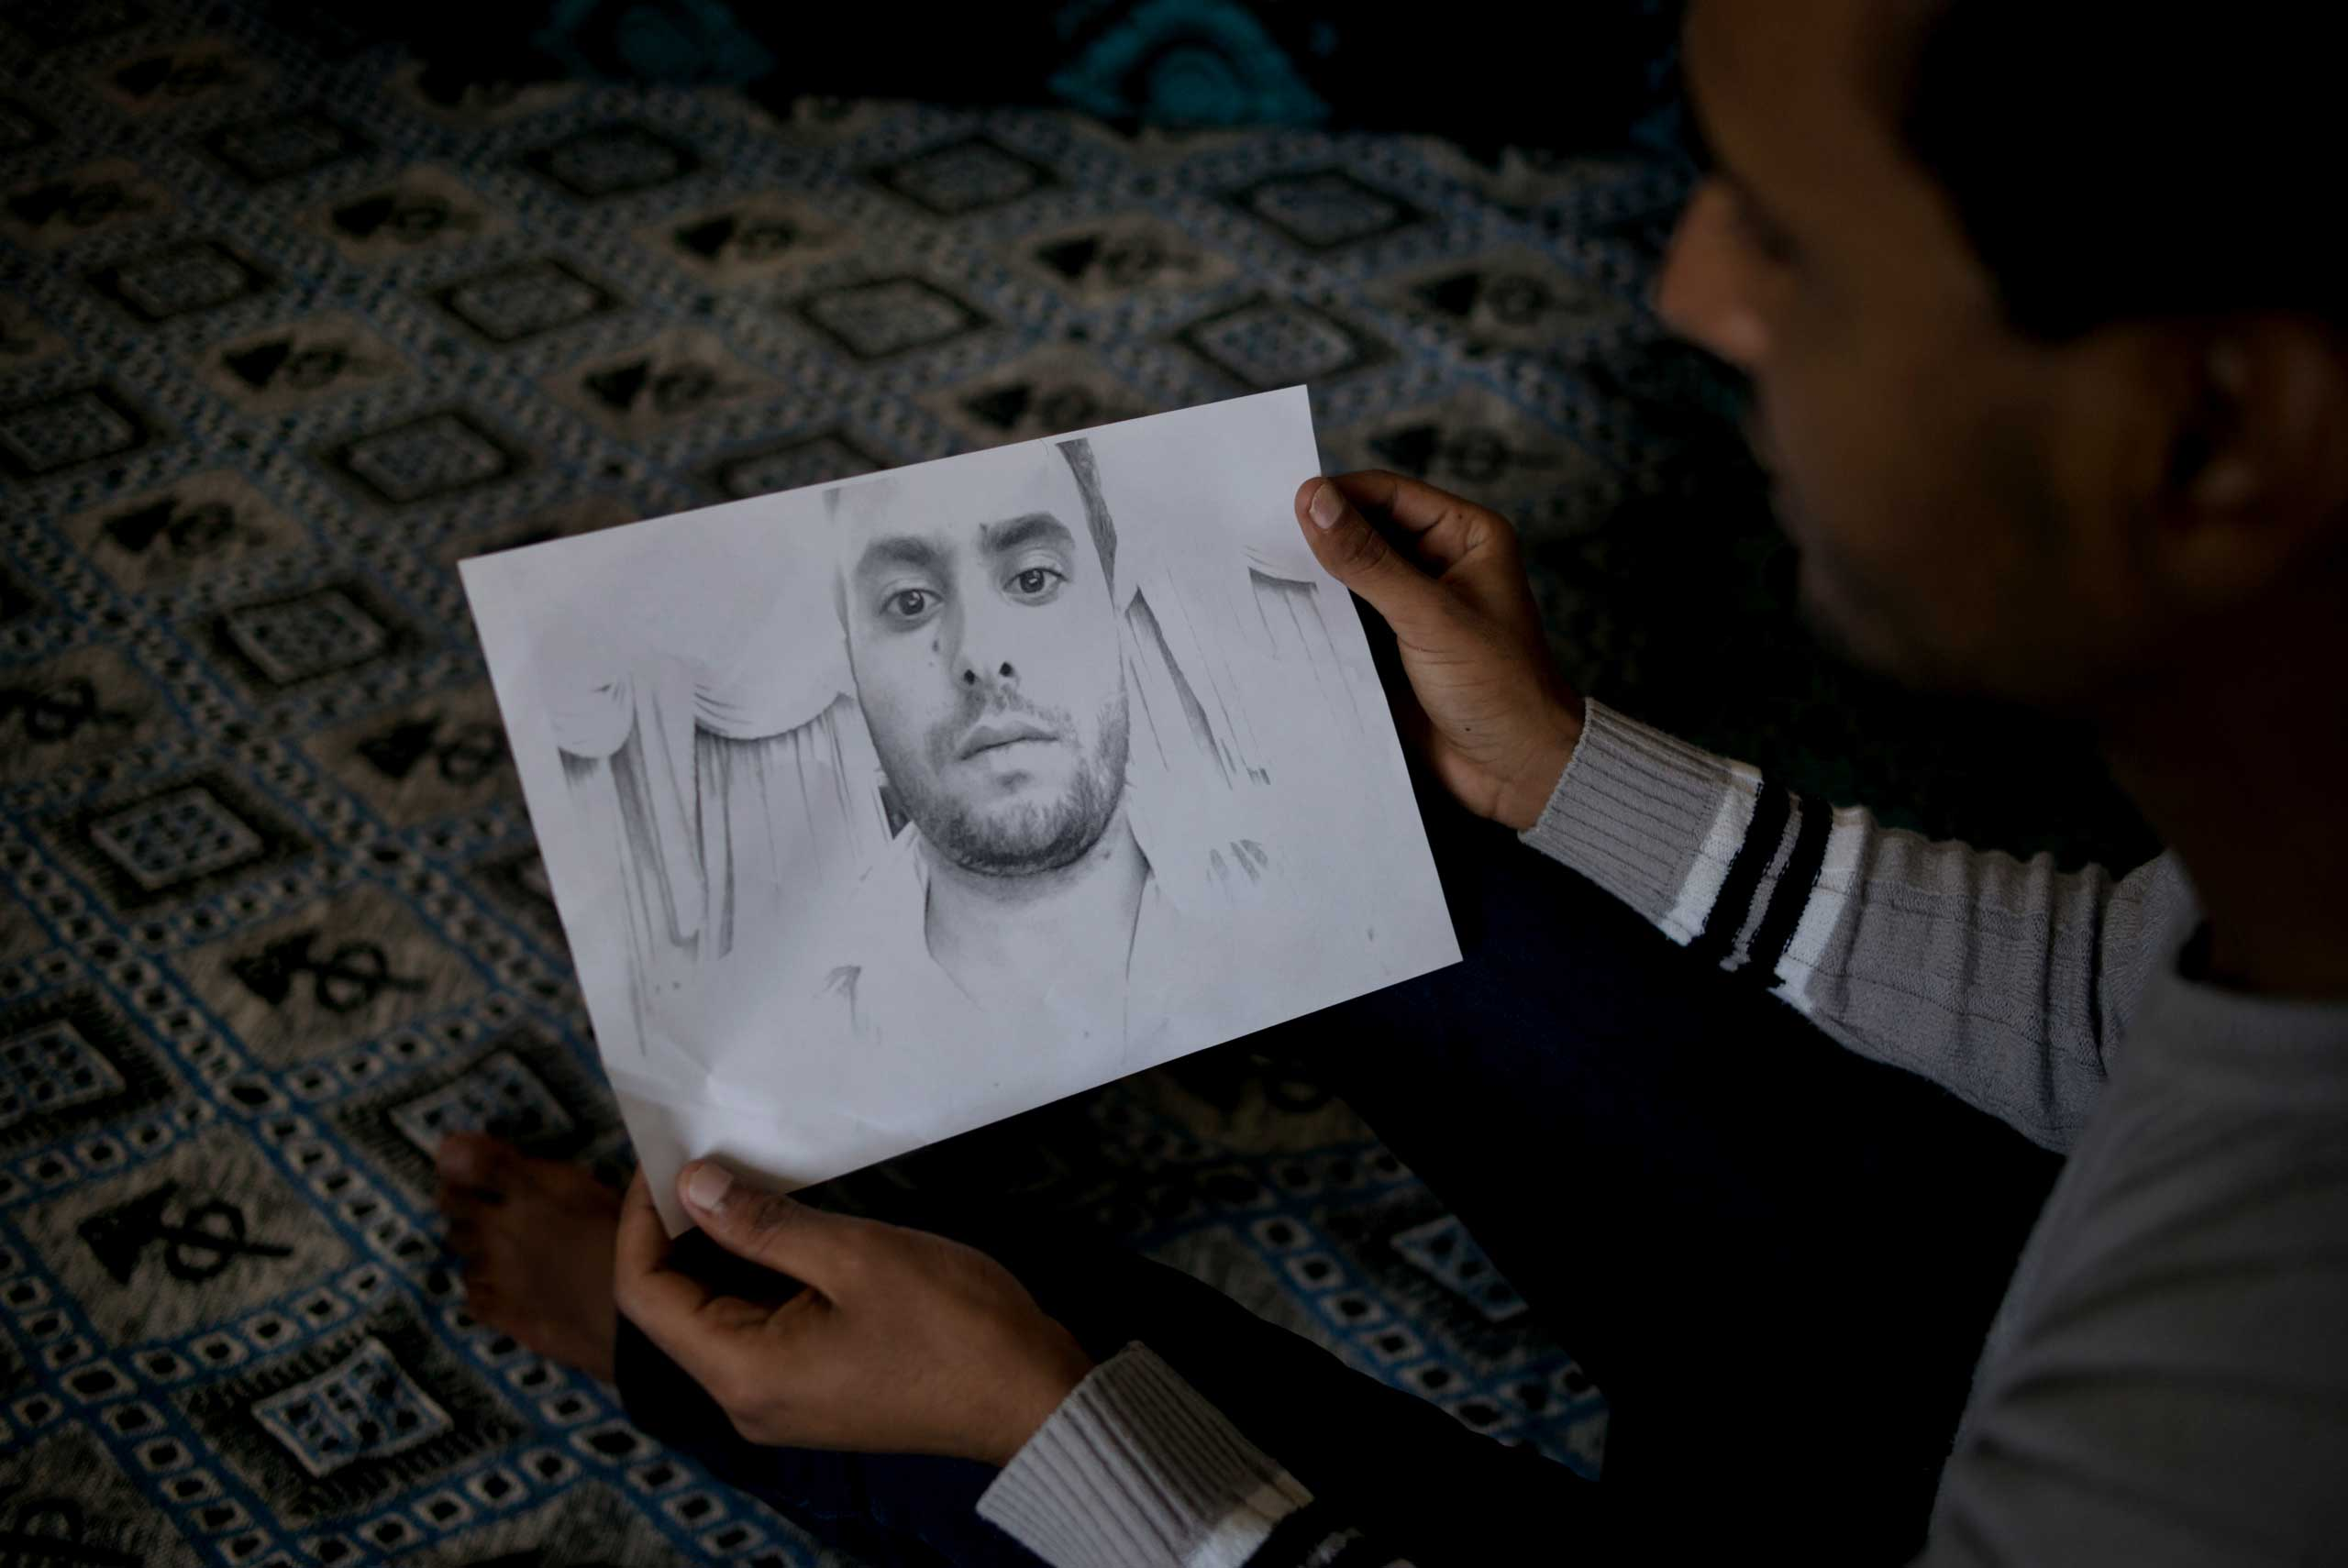 Amine Sayehi holds a sketch of his brother Anis, a university professor who suddenly left their central Tunisian town of Sidi Bouzid on Feb. 22 2014. He called home two days later from Turkey but the family believe he was killed in the Syrian city of Aleppo less than a month later. They still don't know the exact details of how or when he died.